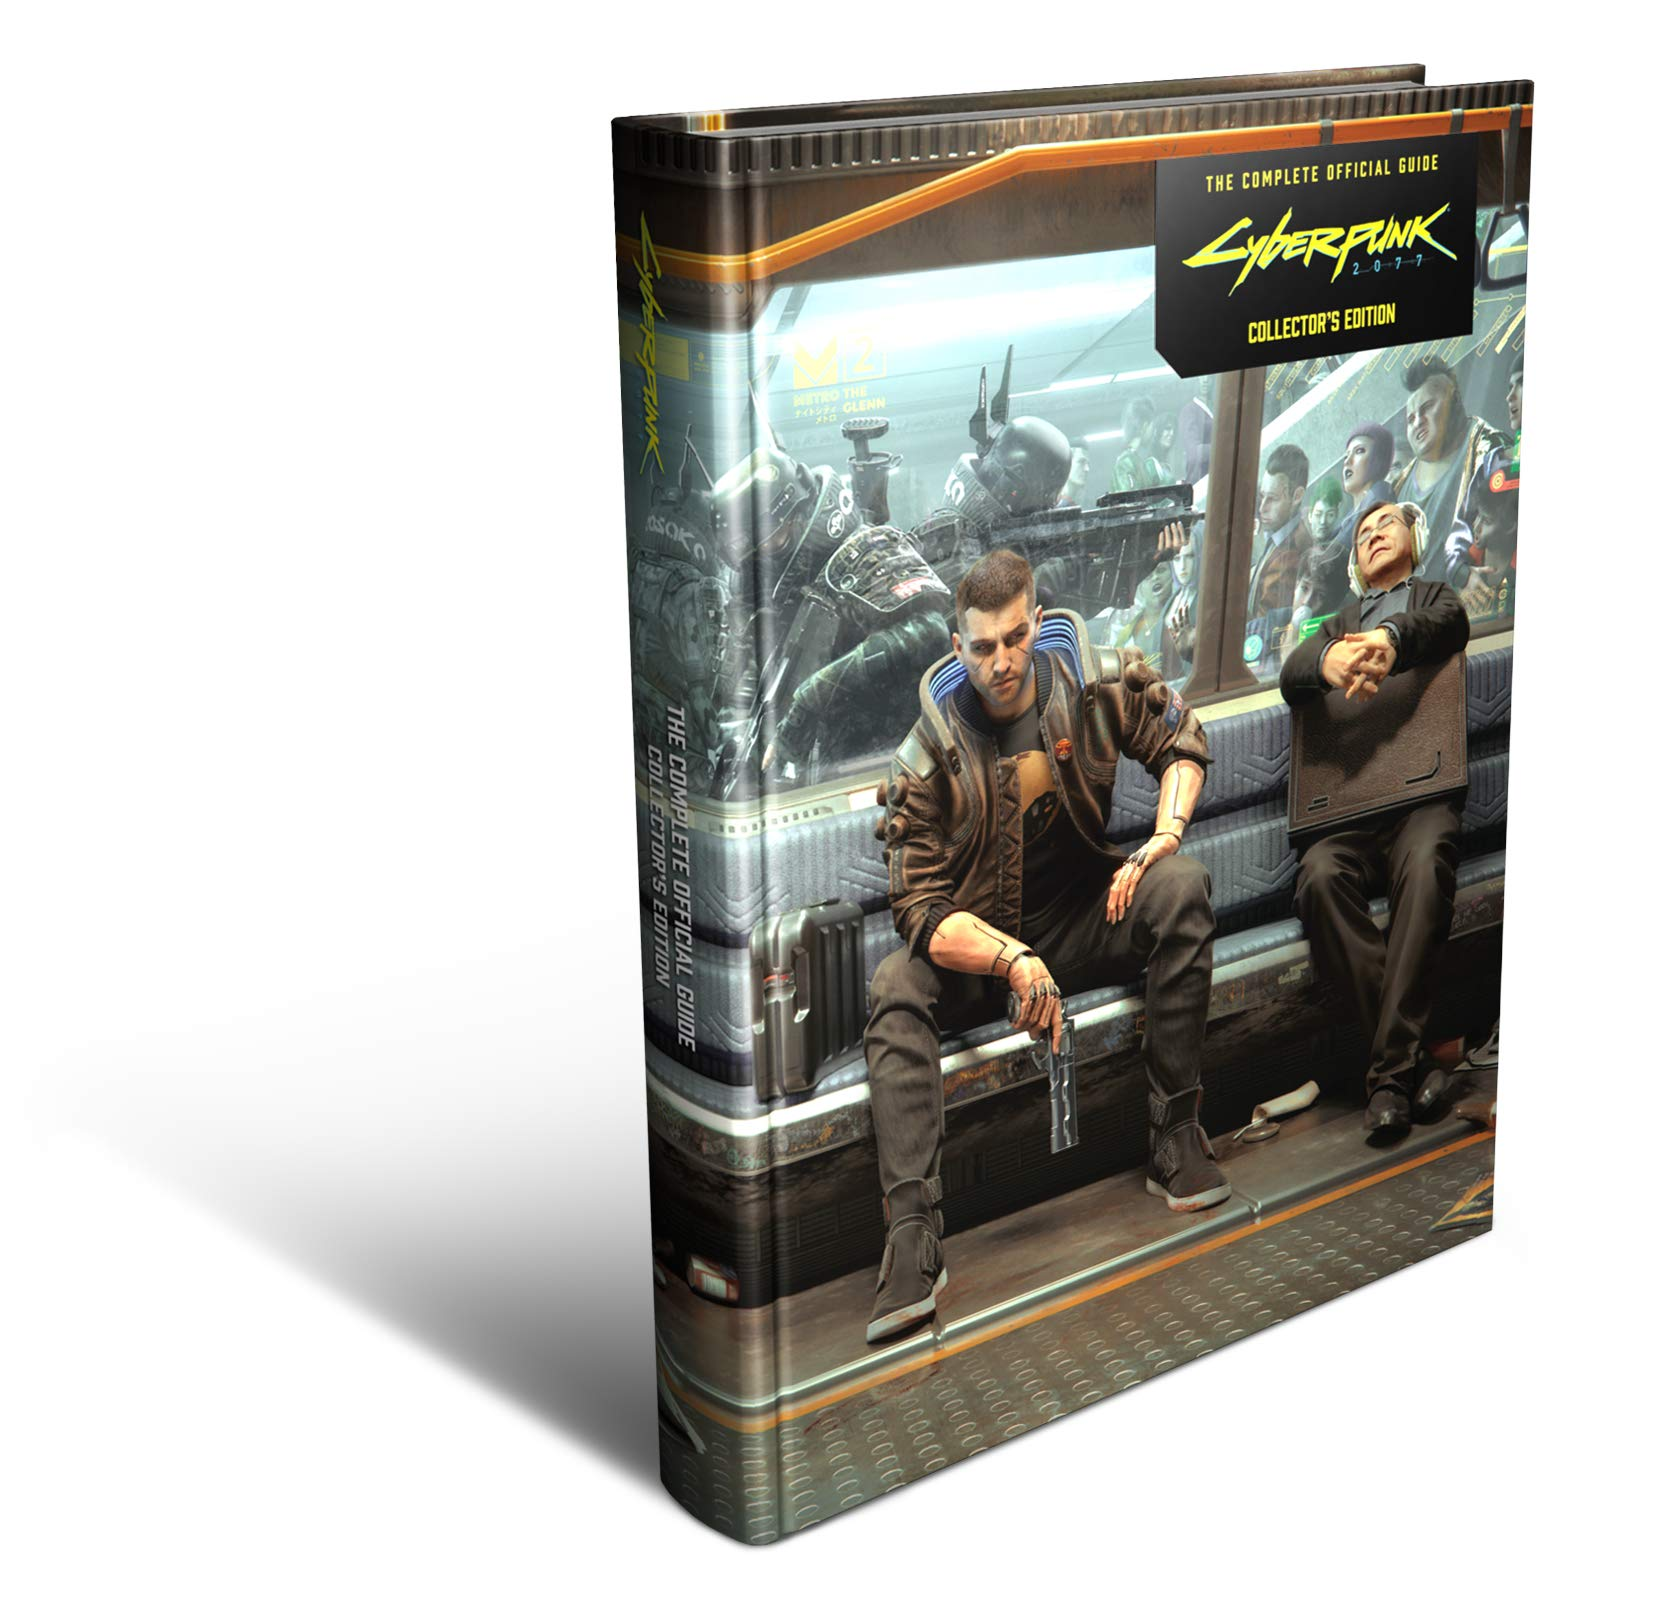 Cyberpunk 2077: The Complete Official Guide - Collector's Edition